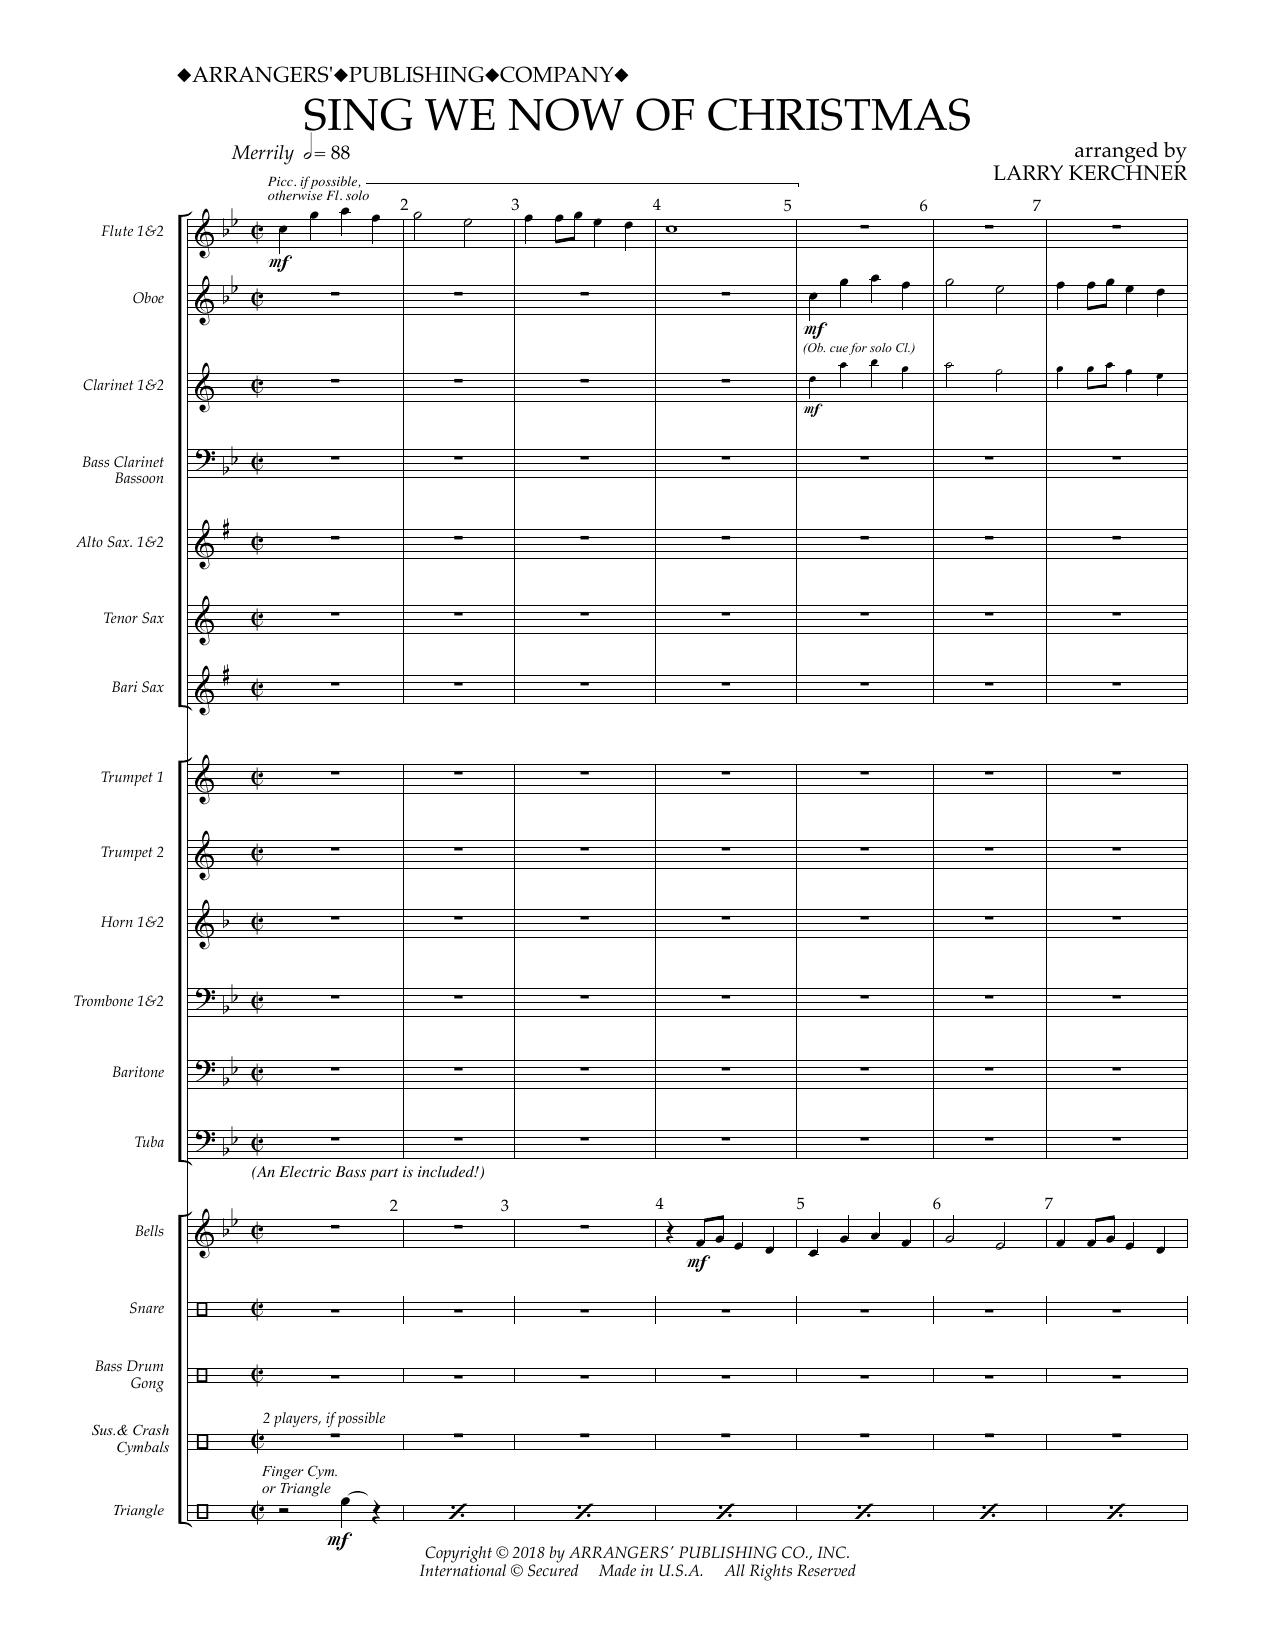 Traditional French Carol Sing We Now of Christmas (arr. Larry Kerchner) - Conductor Score (Full Score) sheet music preview music notes and score for Concert Band including 16 page(s)